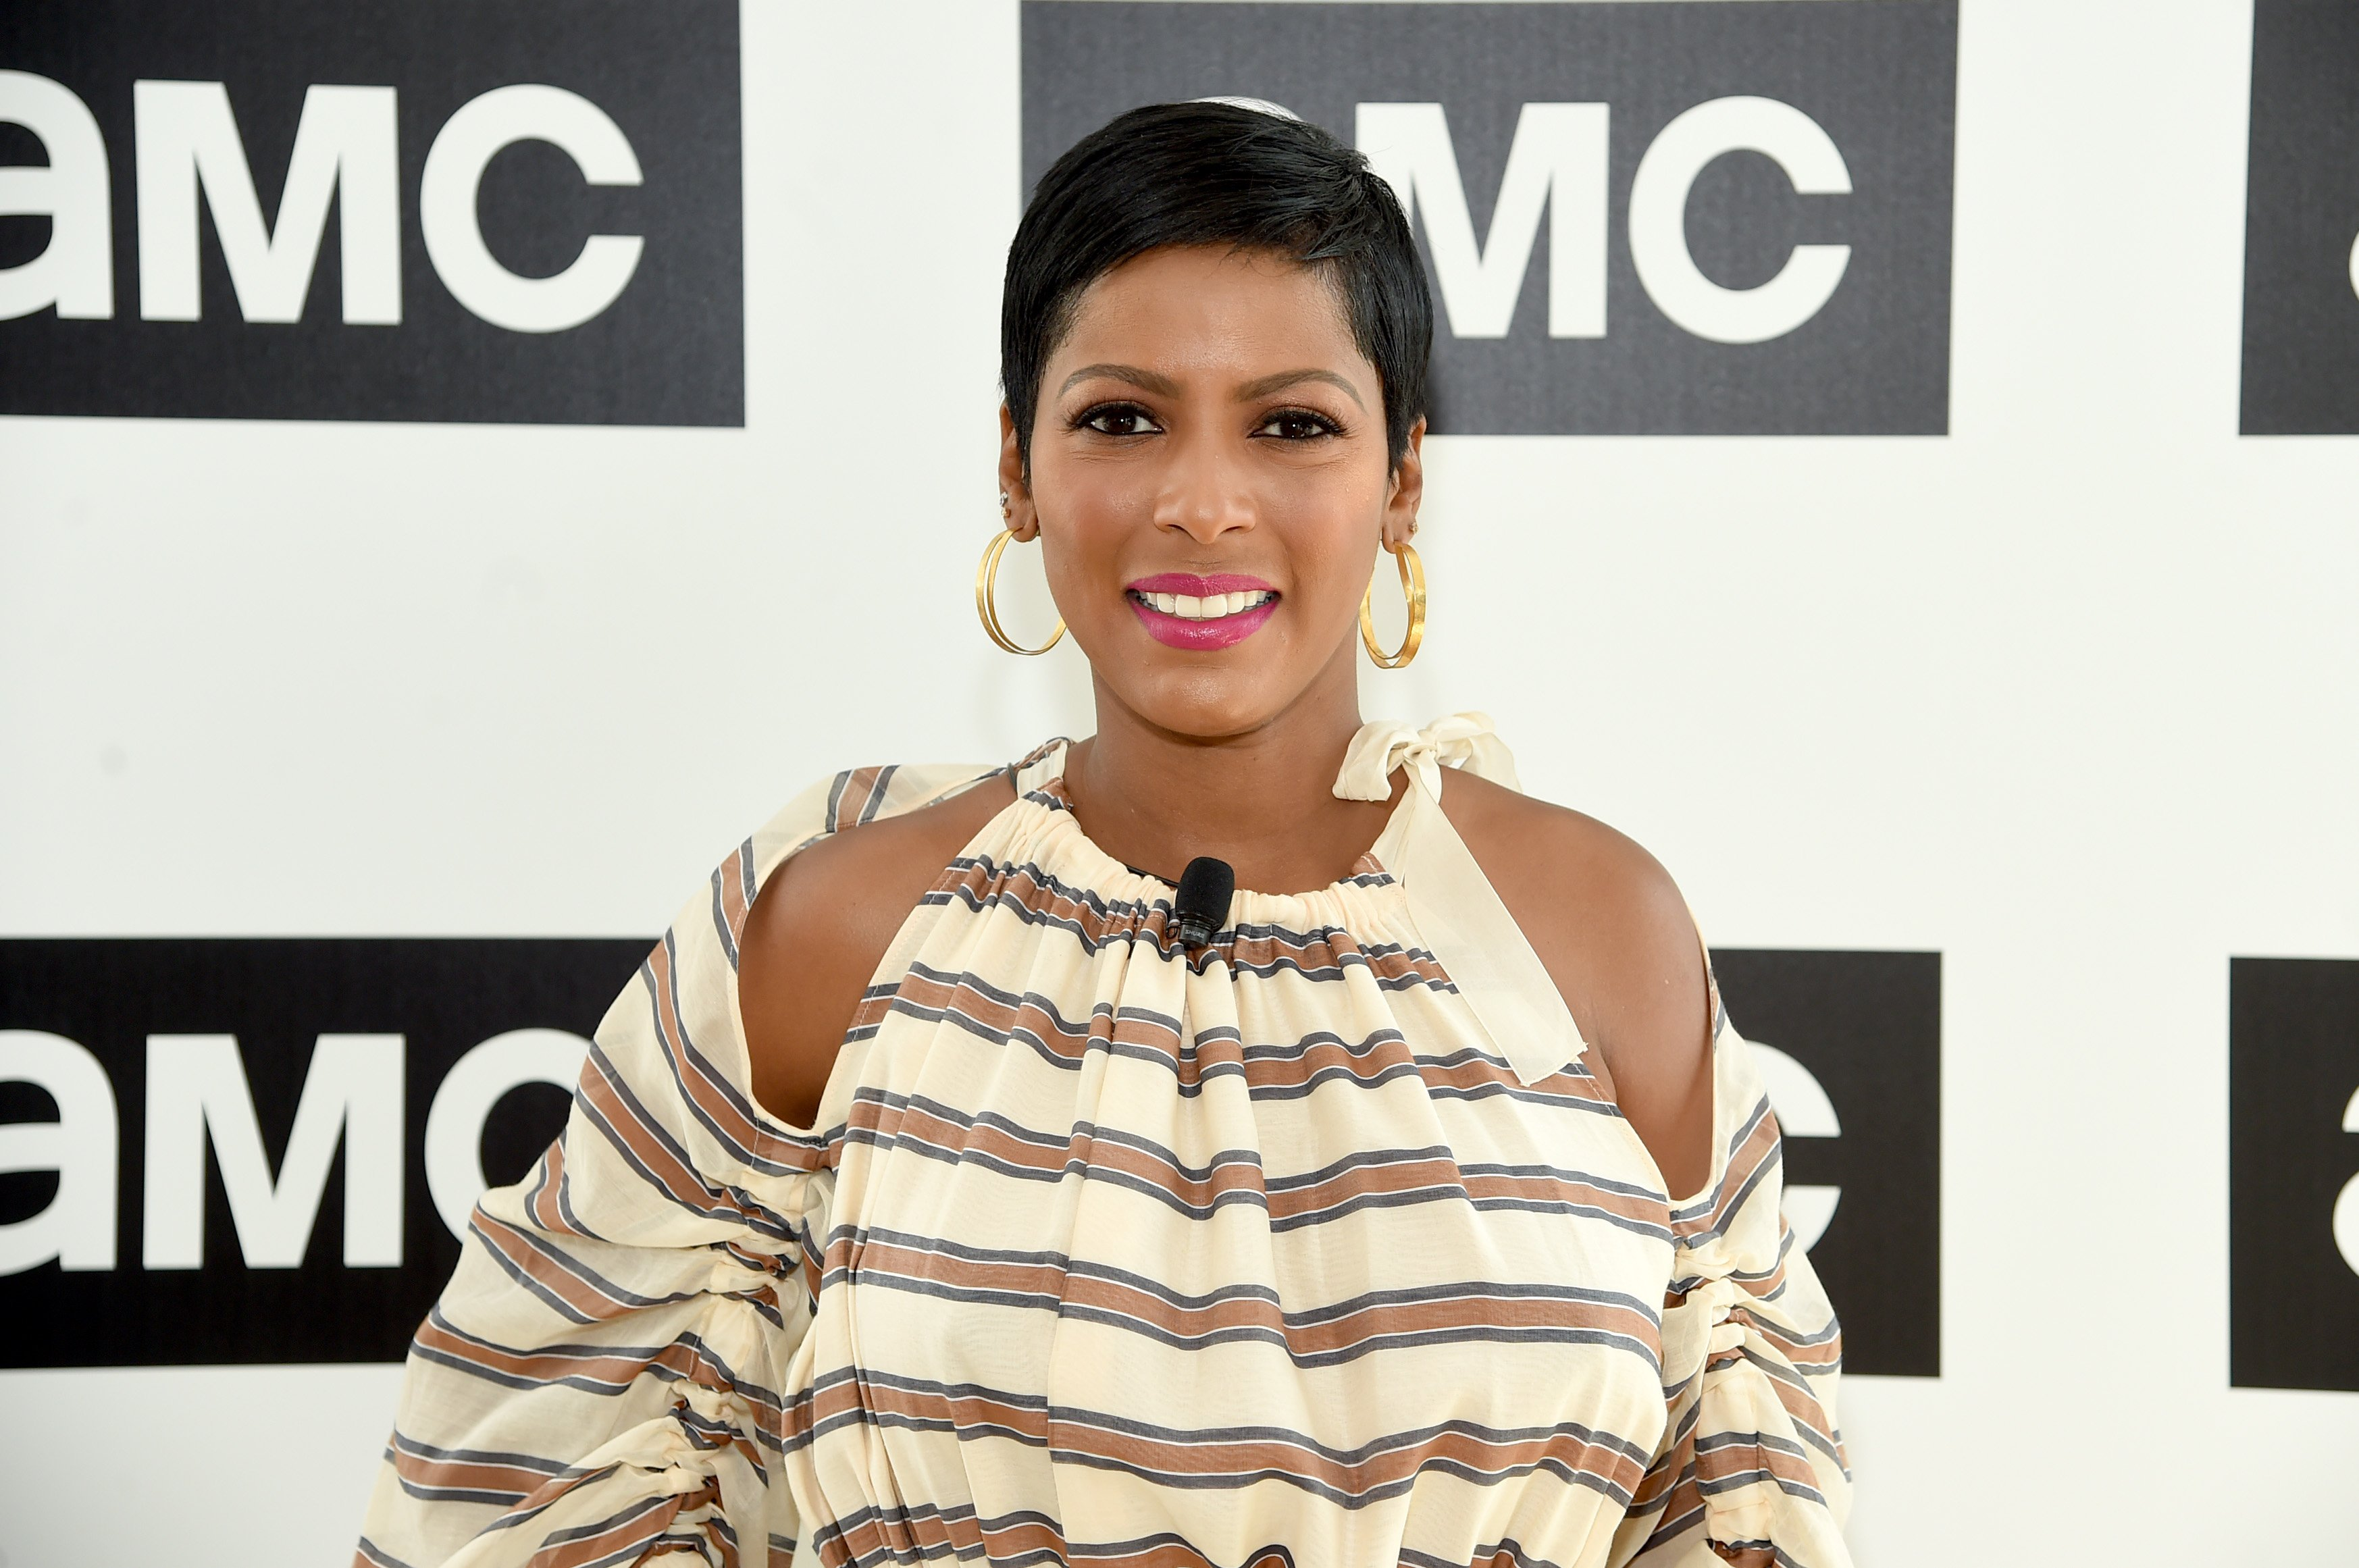 Tamron Hall pictured at the AMC Summit at Public Hotel on June 20, 2018 in New York City. | Source: Getty Images